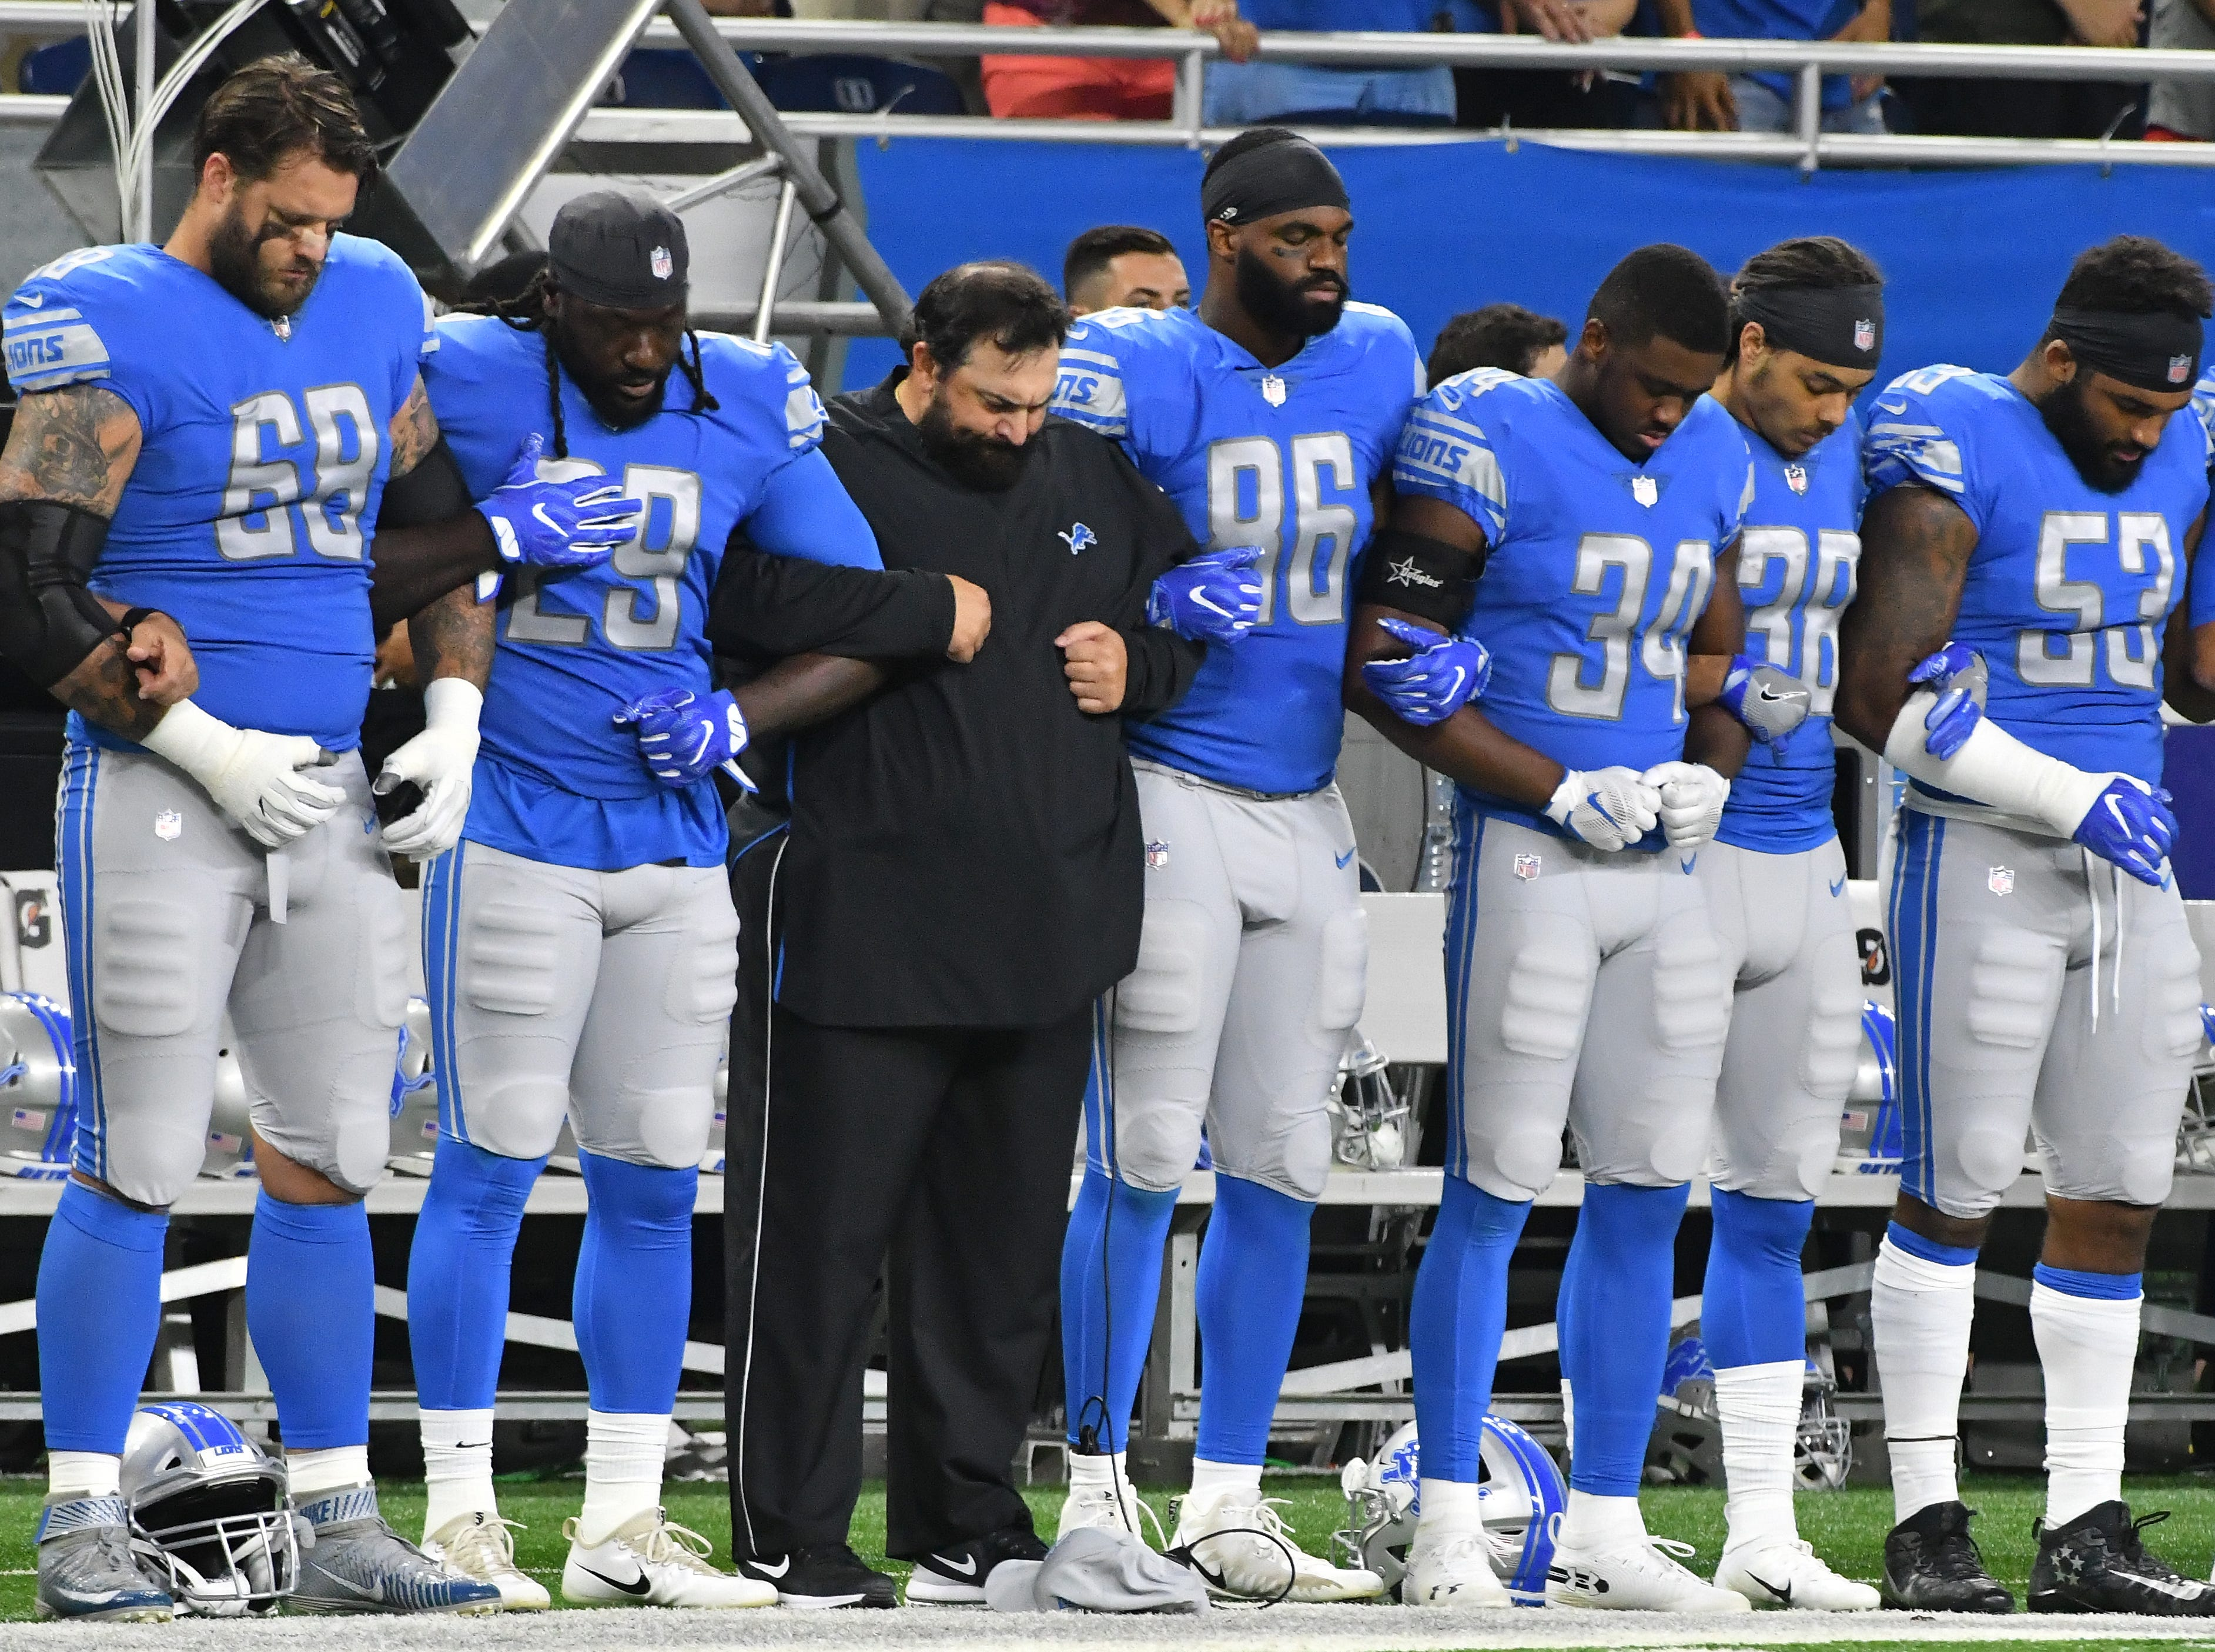 Lions head coach Matt Patricia during the national anthem before the game.